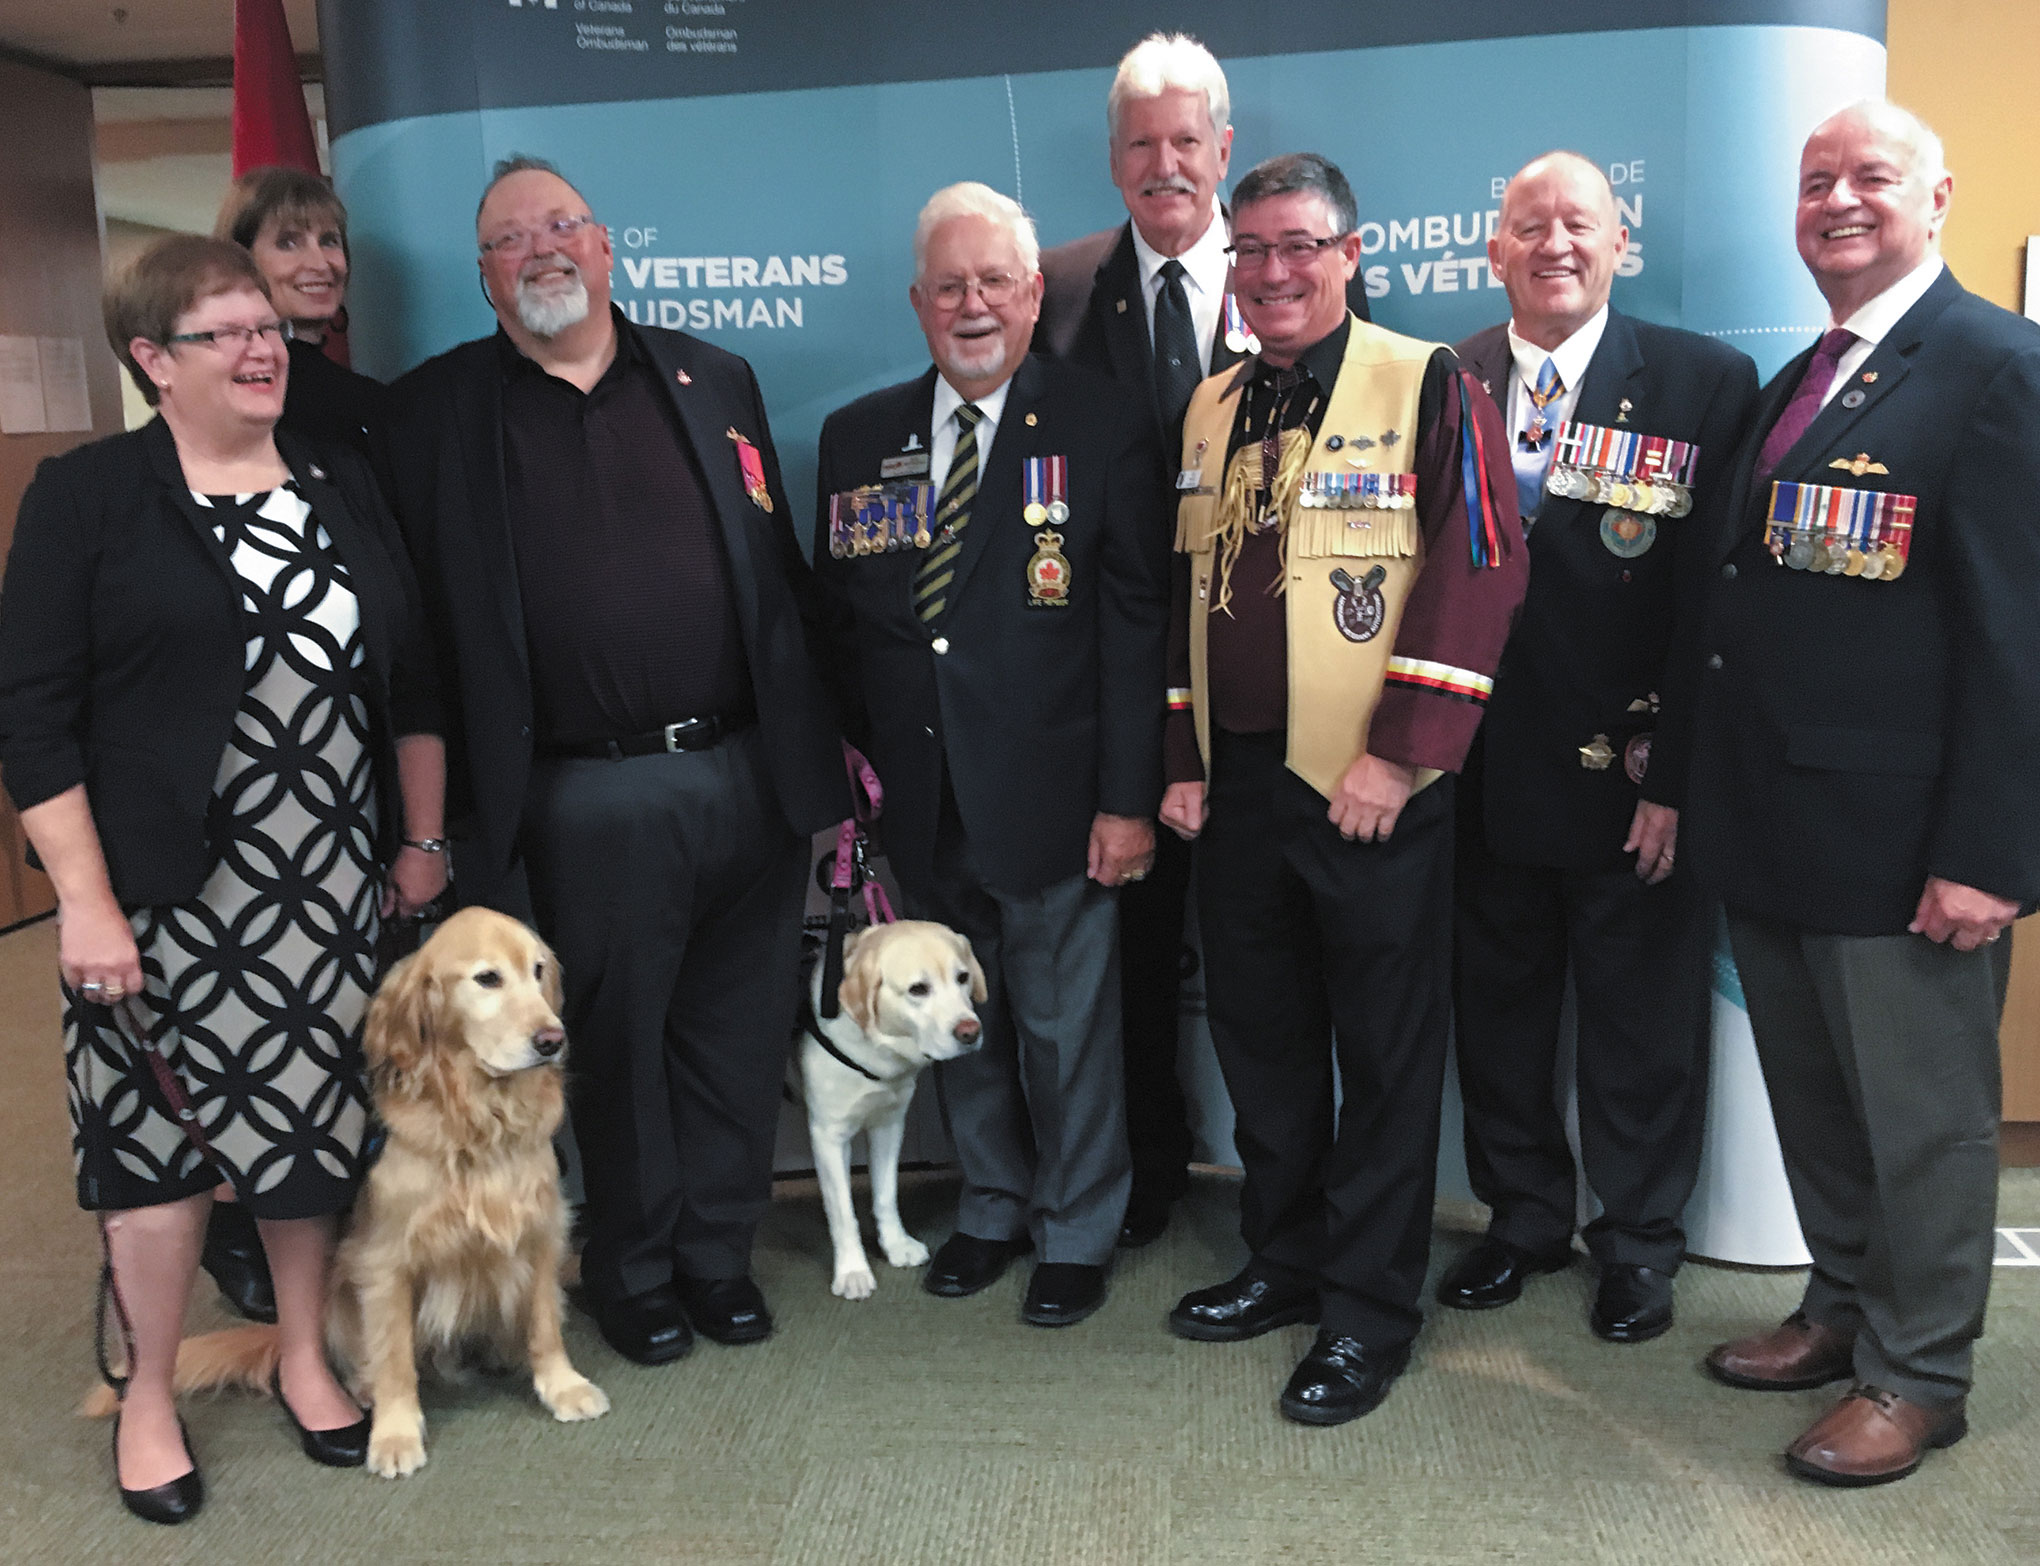 Veterans Ombudsman, Guy Parent, and Deputy Veterans Ombudsman, Sharon Squire, with the 2017 Veterans Ombudsman Commendation recipients